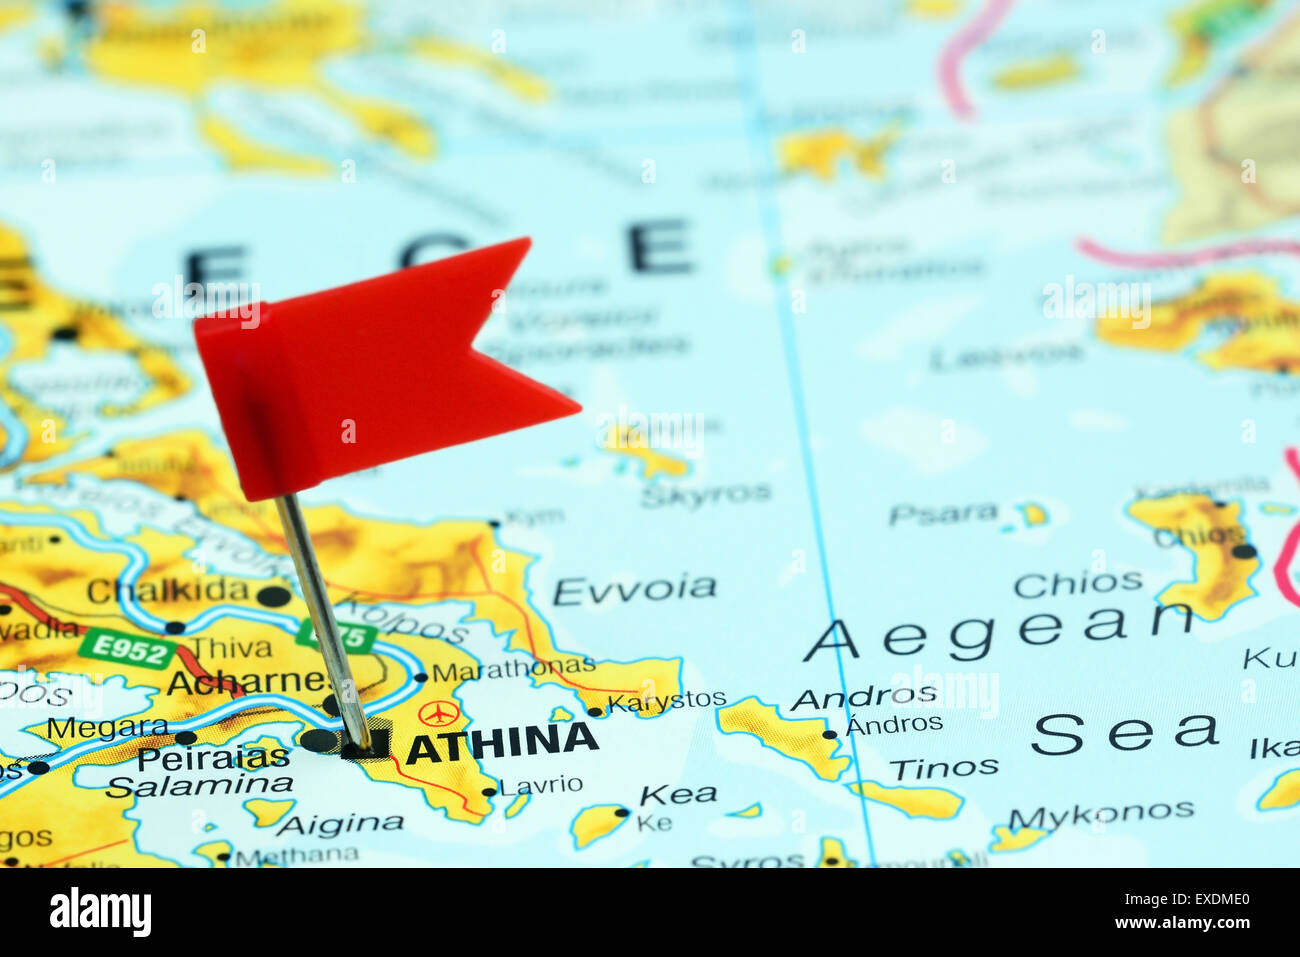 Athens Pinned On A Map Of Europe Stock Photo 85123976 Alamy